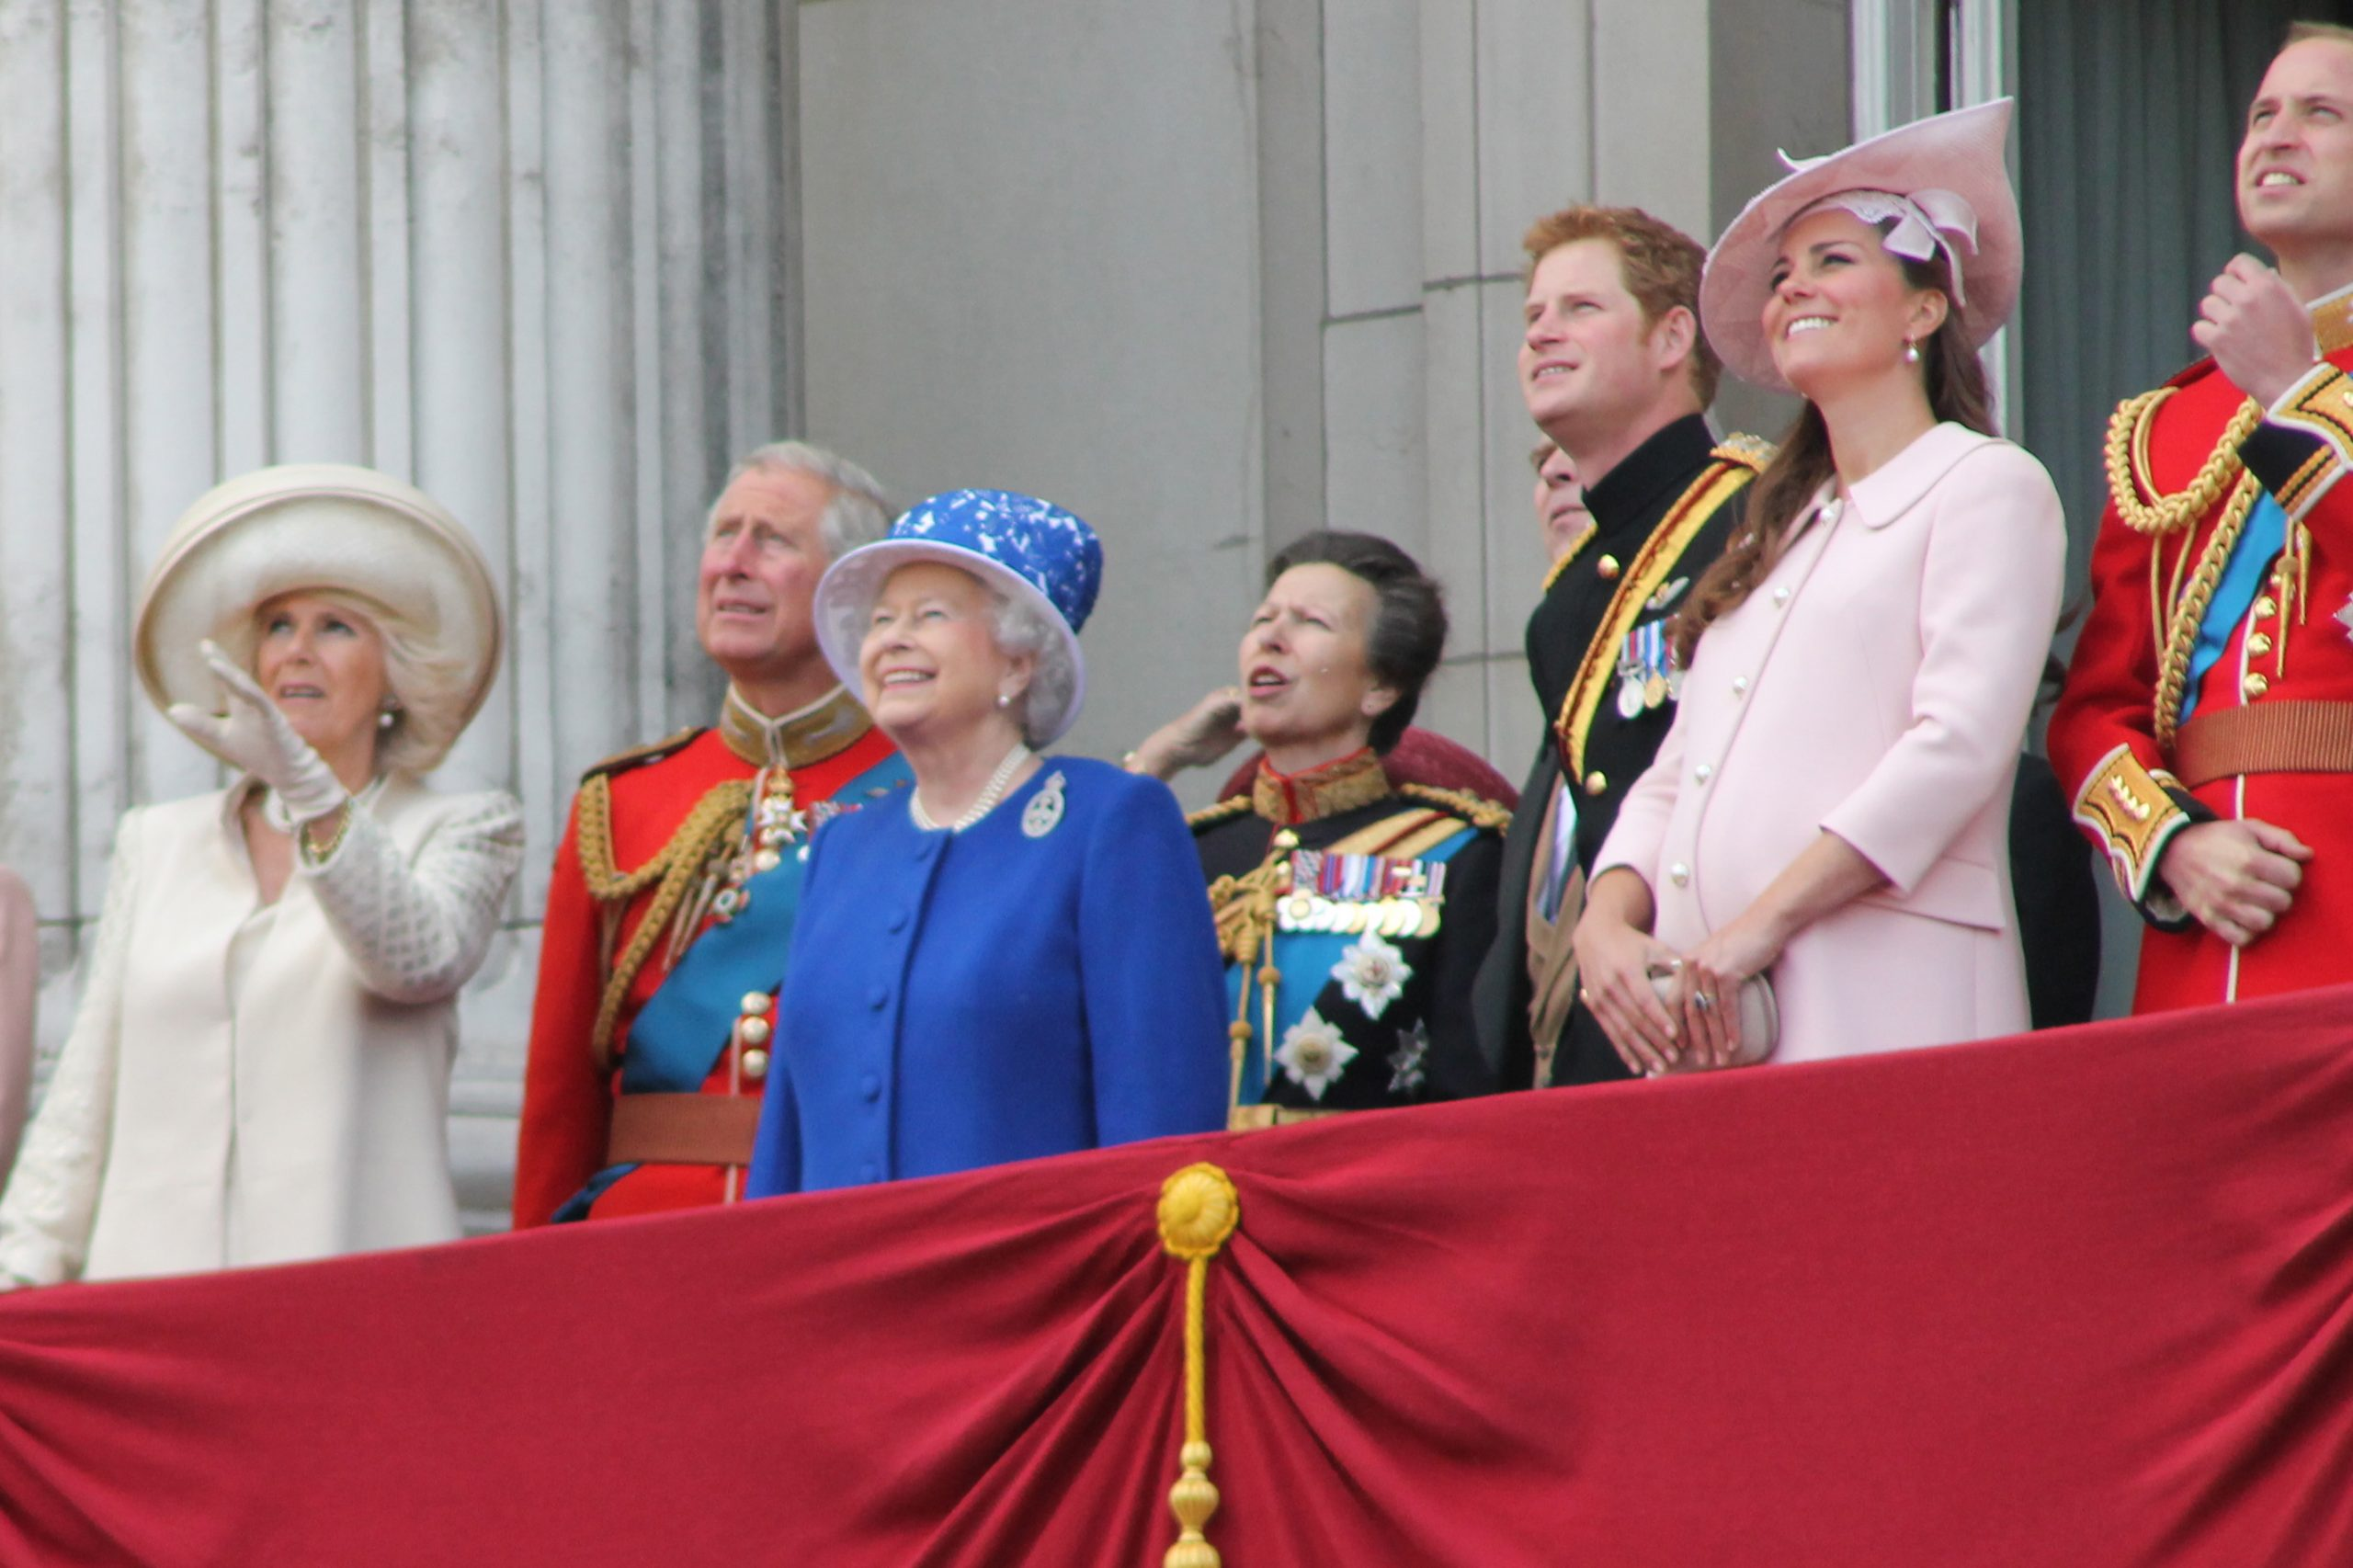 The Royal Family needs reform